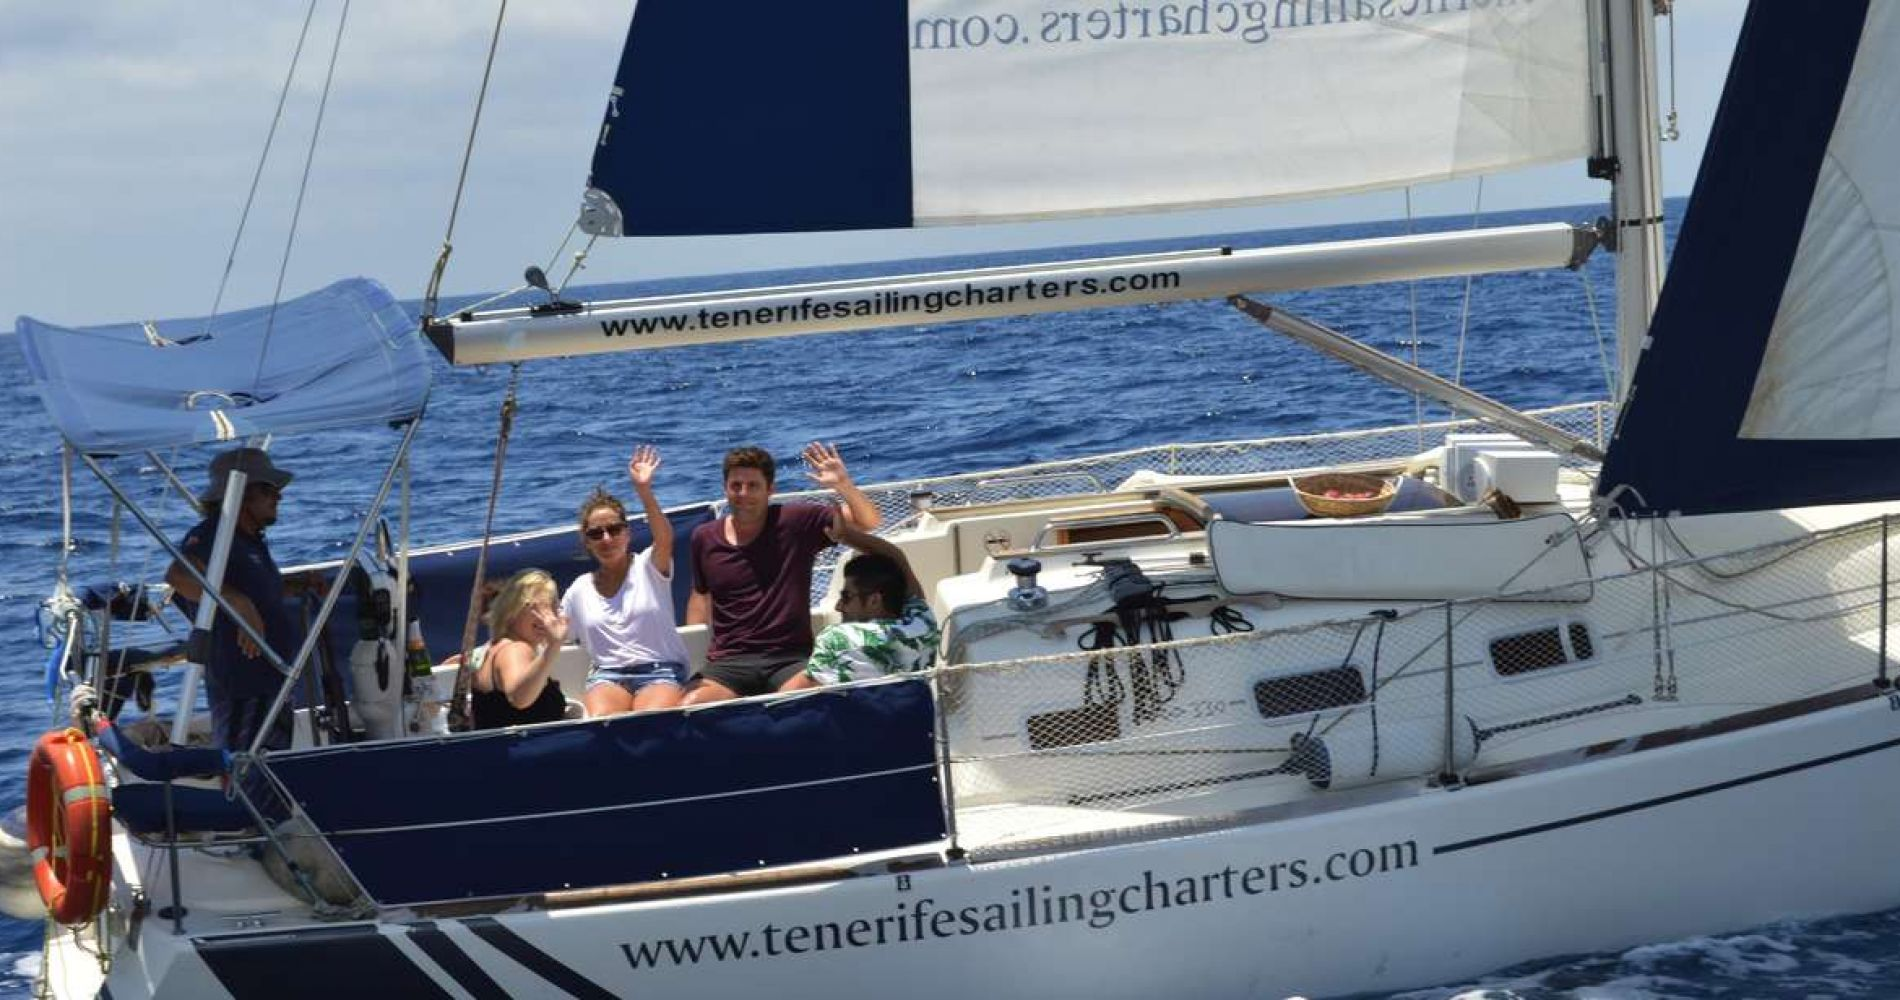 Luxurious Yacht Cruise with Whale and Dolphin Watching in Tenerife for Two